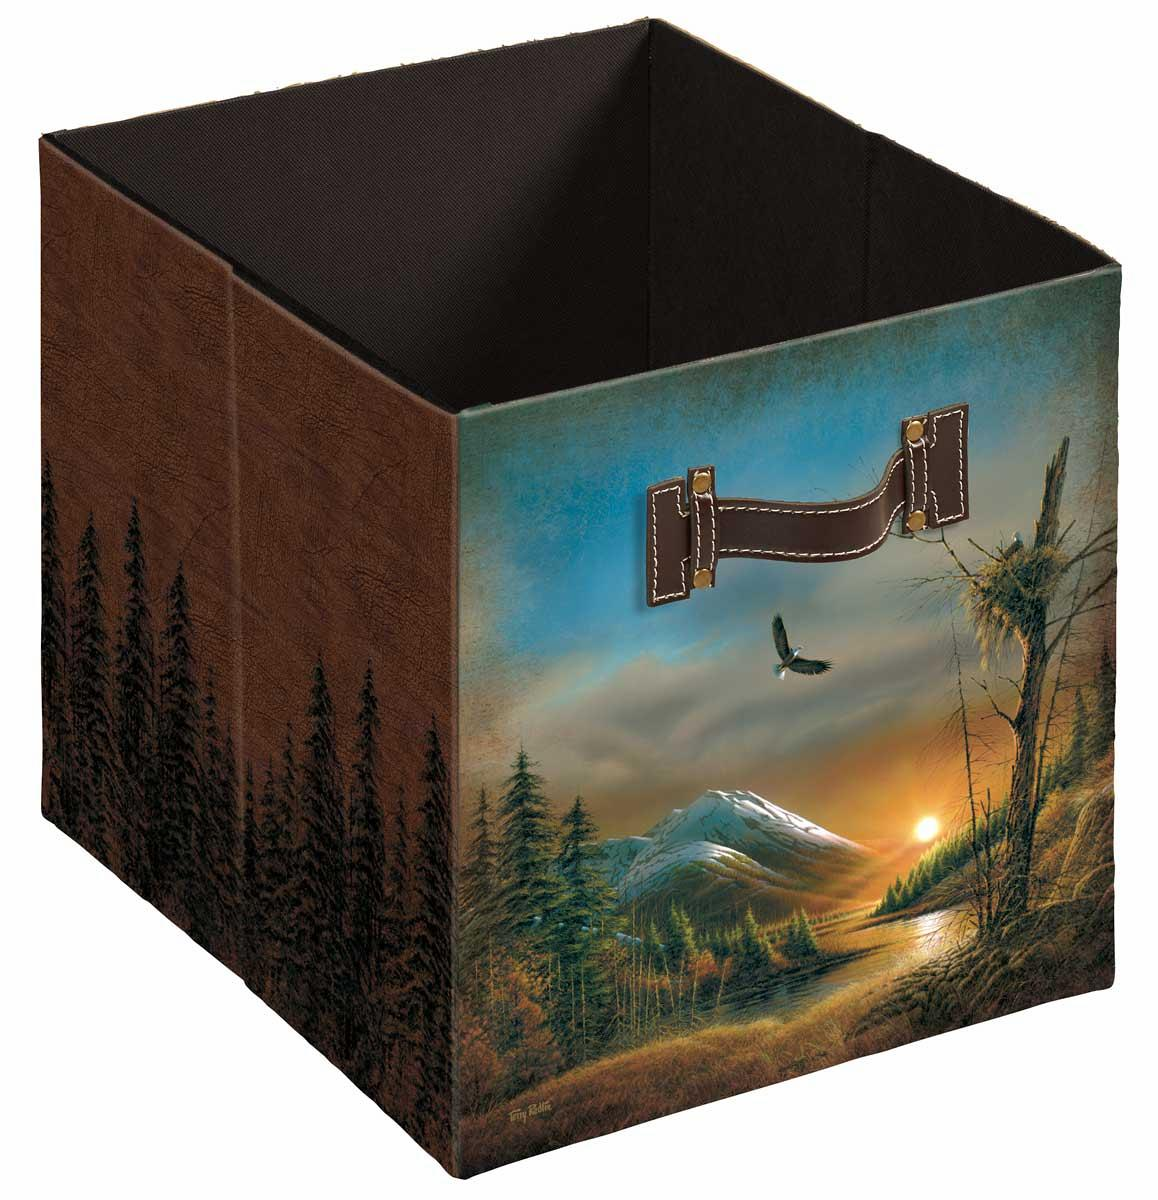 4084003302: Flying Free Folding Storage Bin